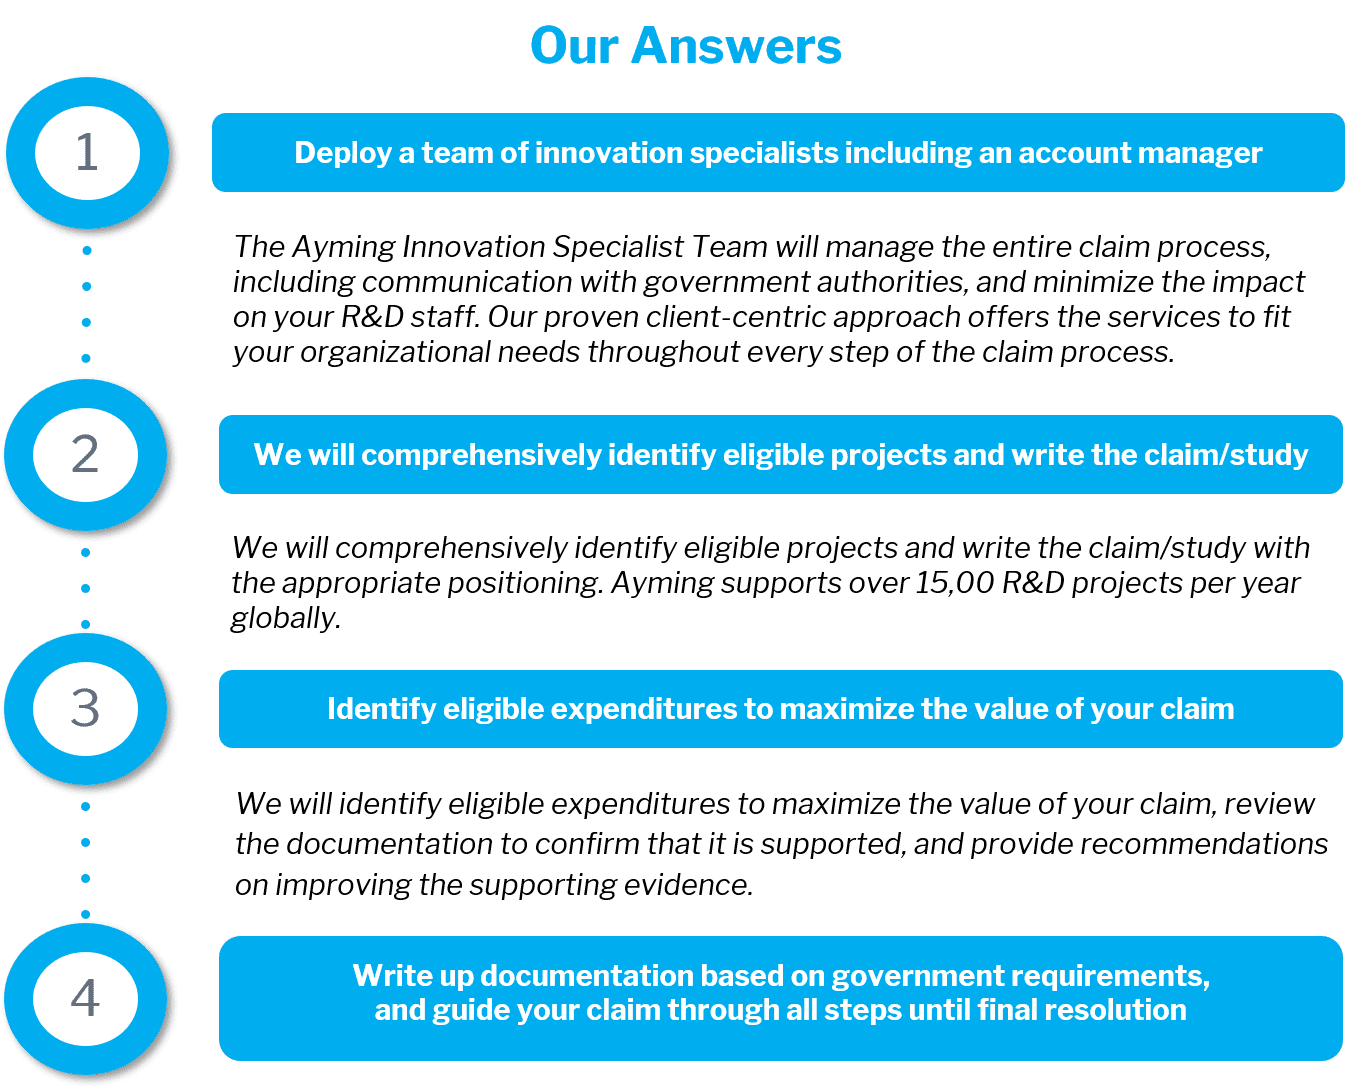 Our solution to our clientele's questions/problems, in the form of a 4-step process.